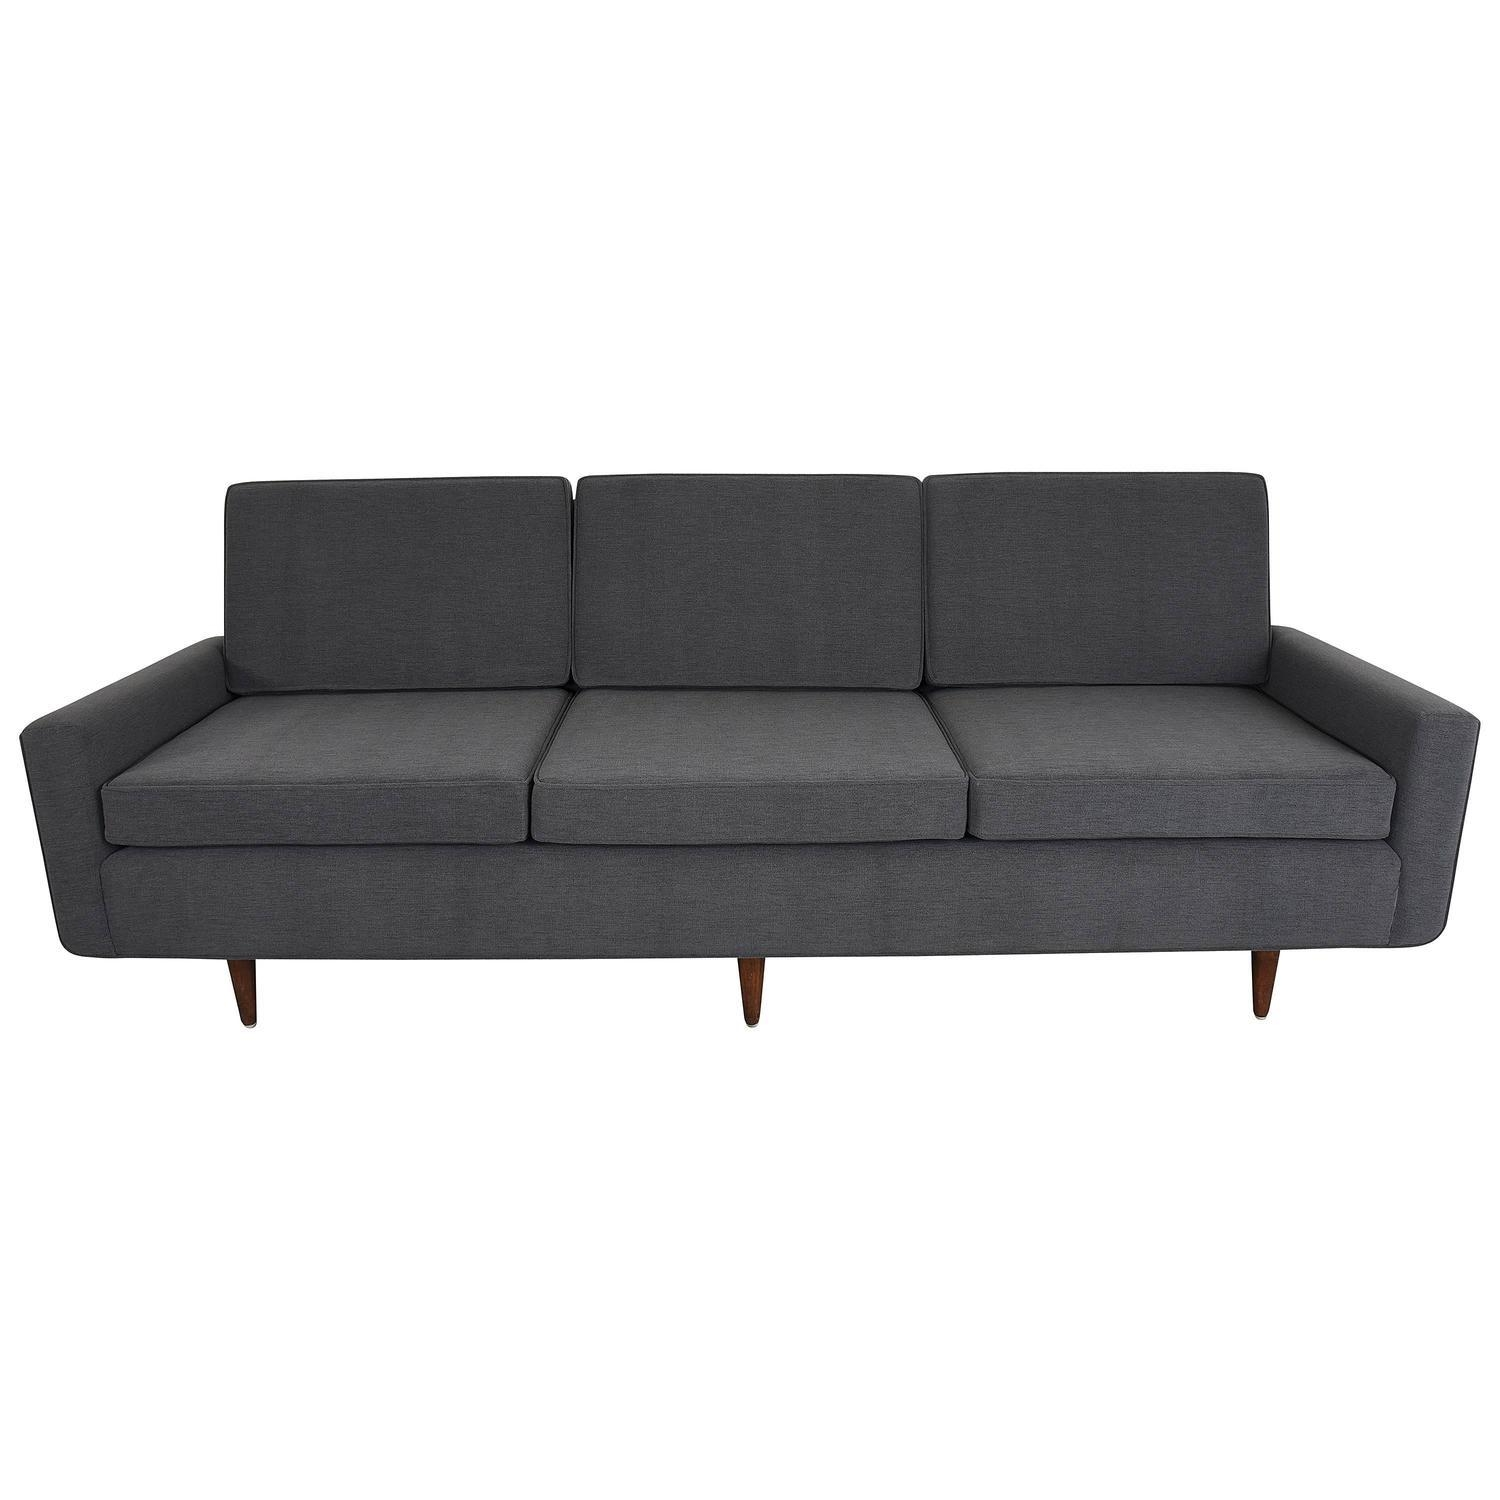 Florence Knoll Sofa Three Seat Sofa, Model 26, Pair Available For Pertaining To Knoll Sofas (View 5 of 20)